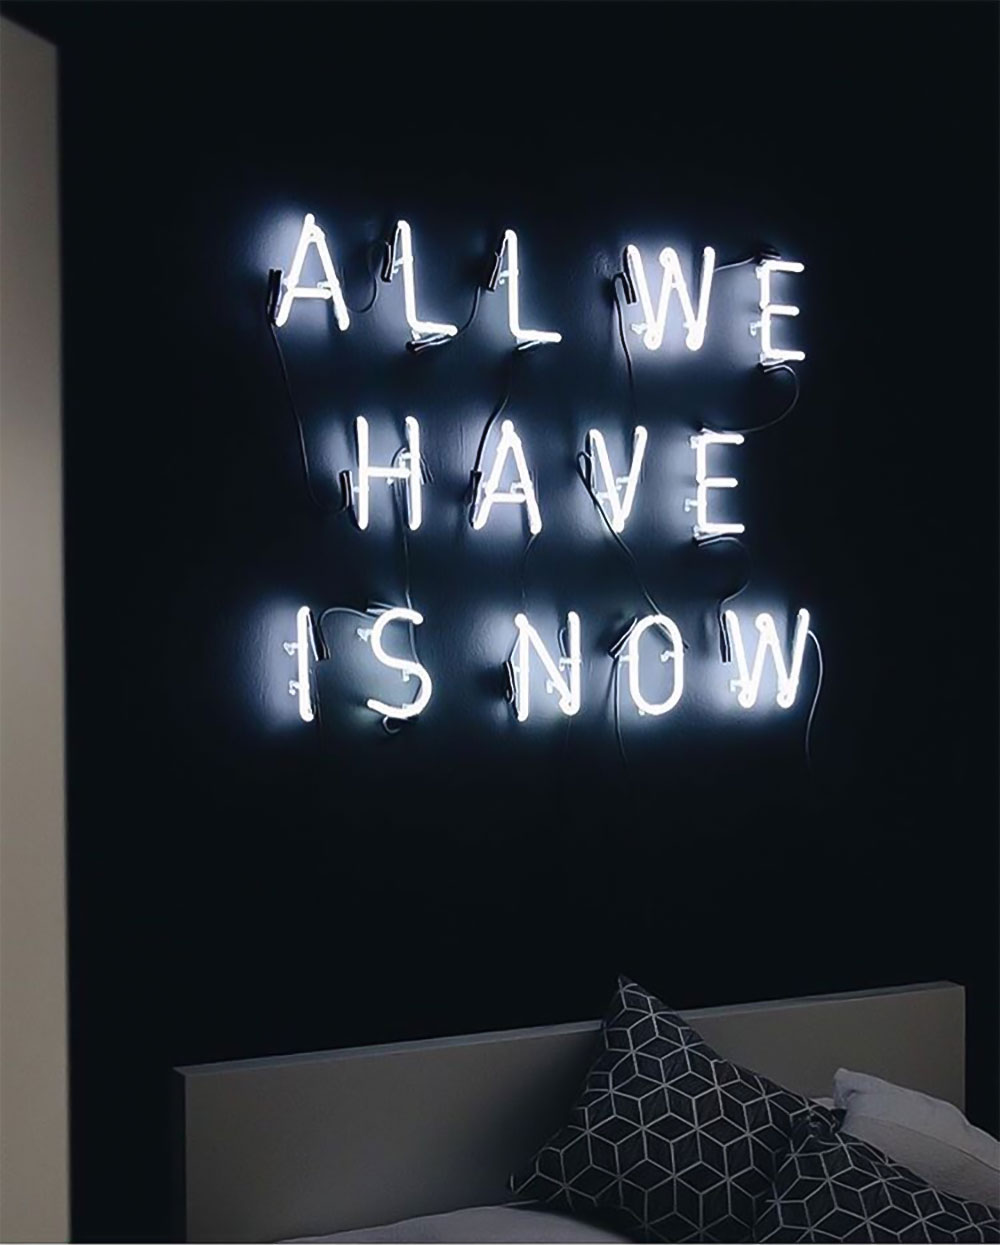 Neon Lights For Wall : Remember This Before Buying Wall neon lights Warisan Lighting